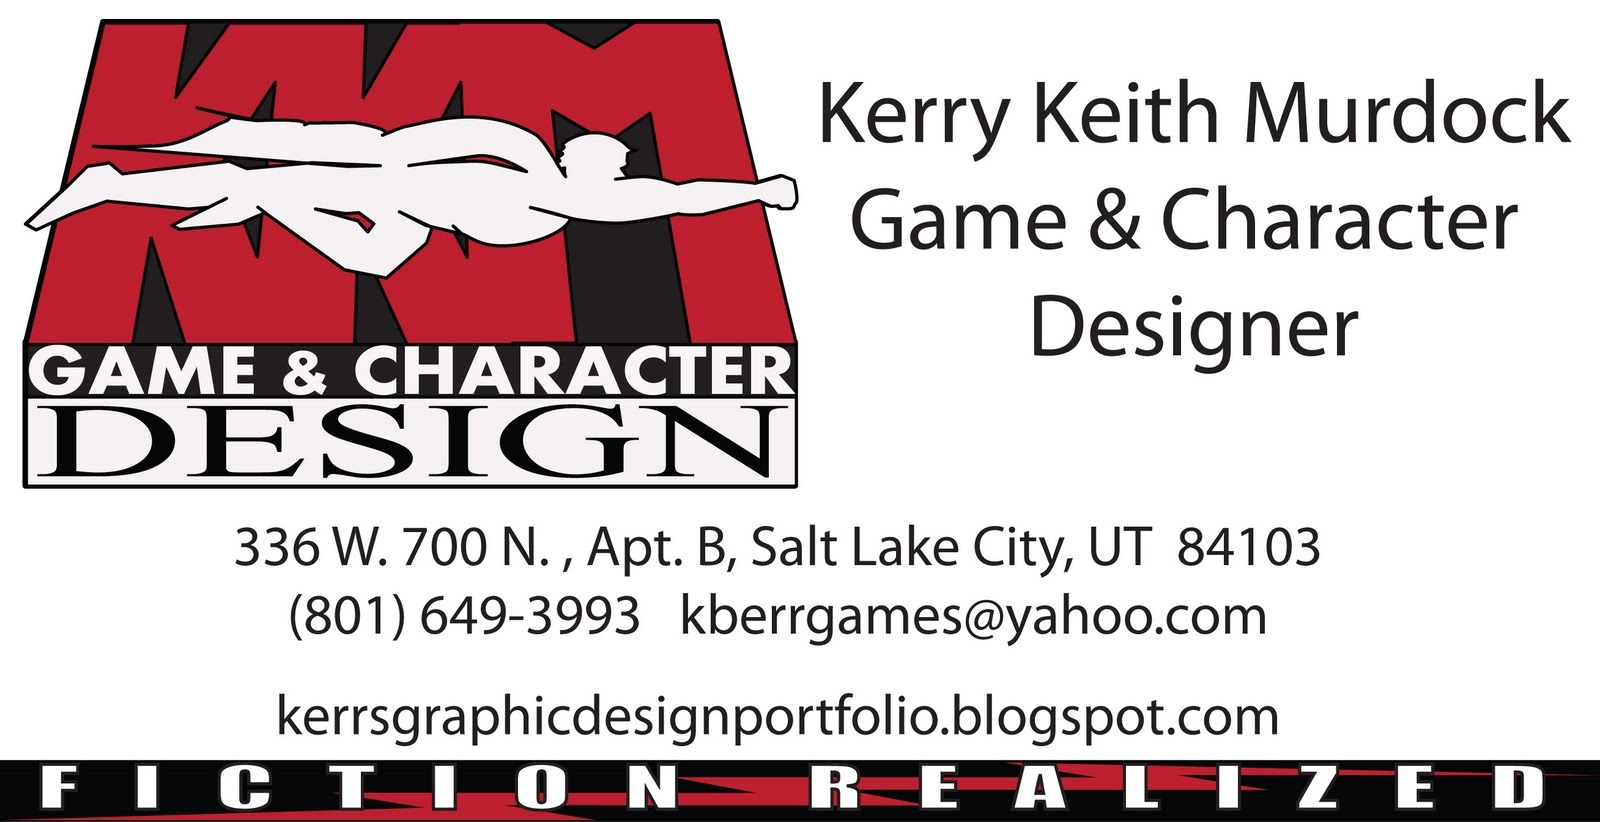 Character Design Business Card : Graphic design experience kkm game character